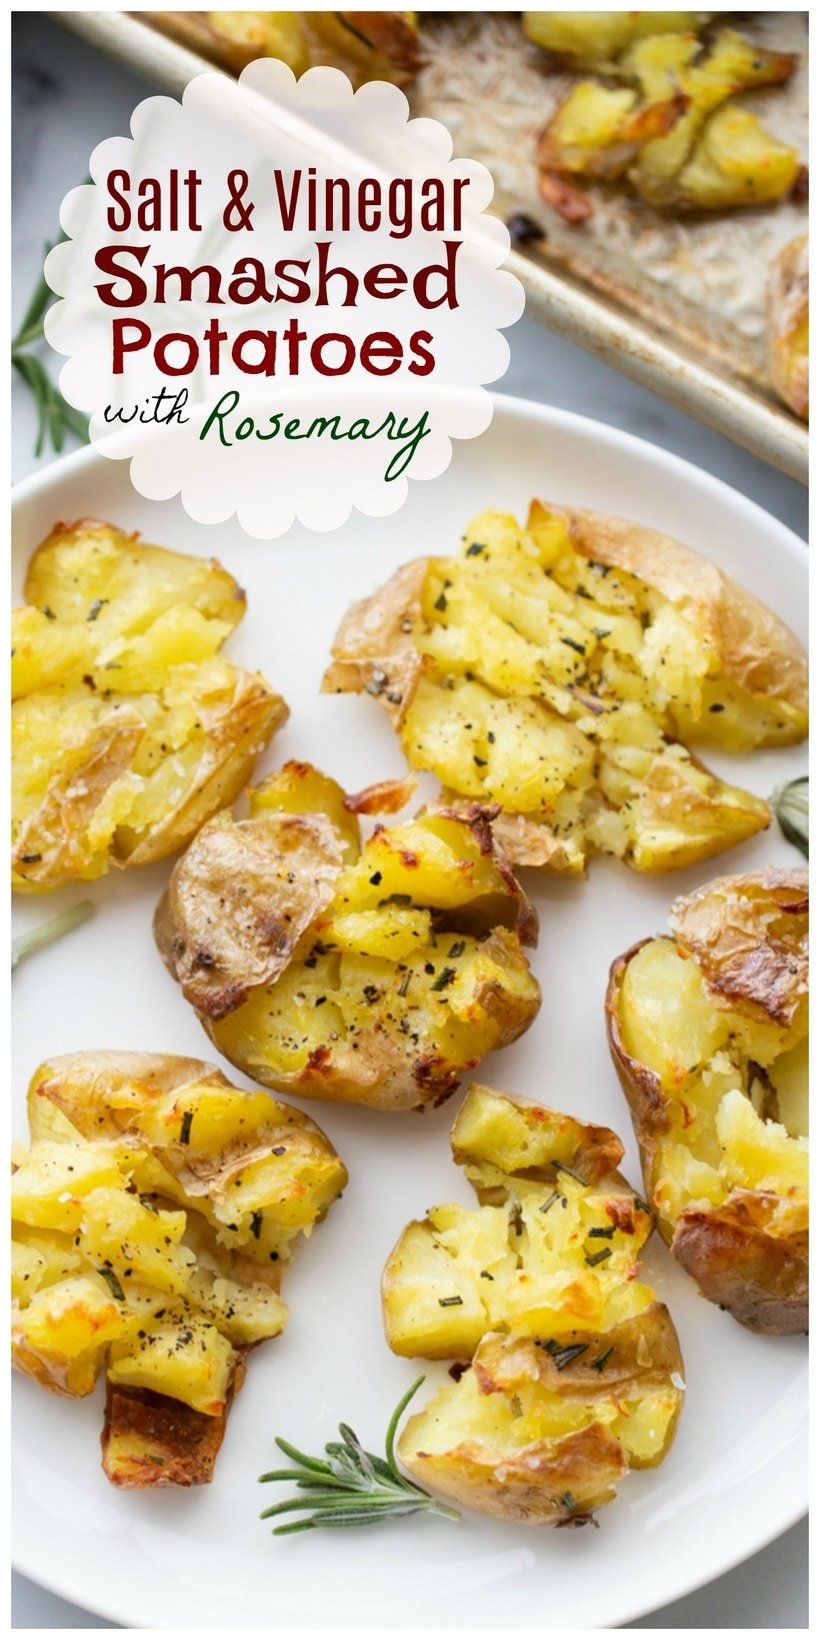 Buttery, crispy and tangy, these baked Salt and Vinegar Smashed Potatoes with Rosemary turn your favorite potato chip flavor into a dinner party-worthy side dish. via @cmpollak1